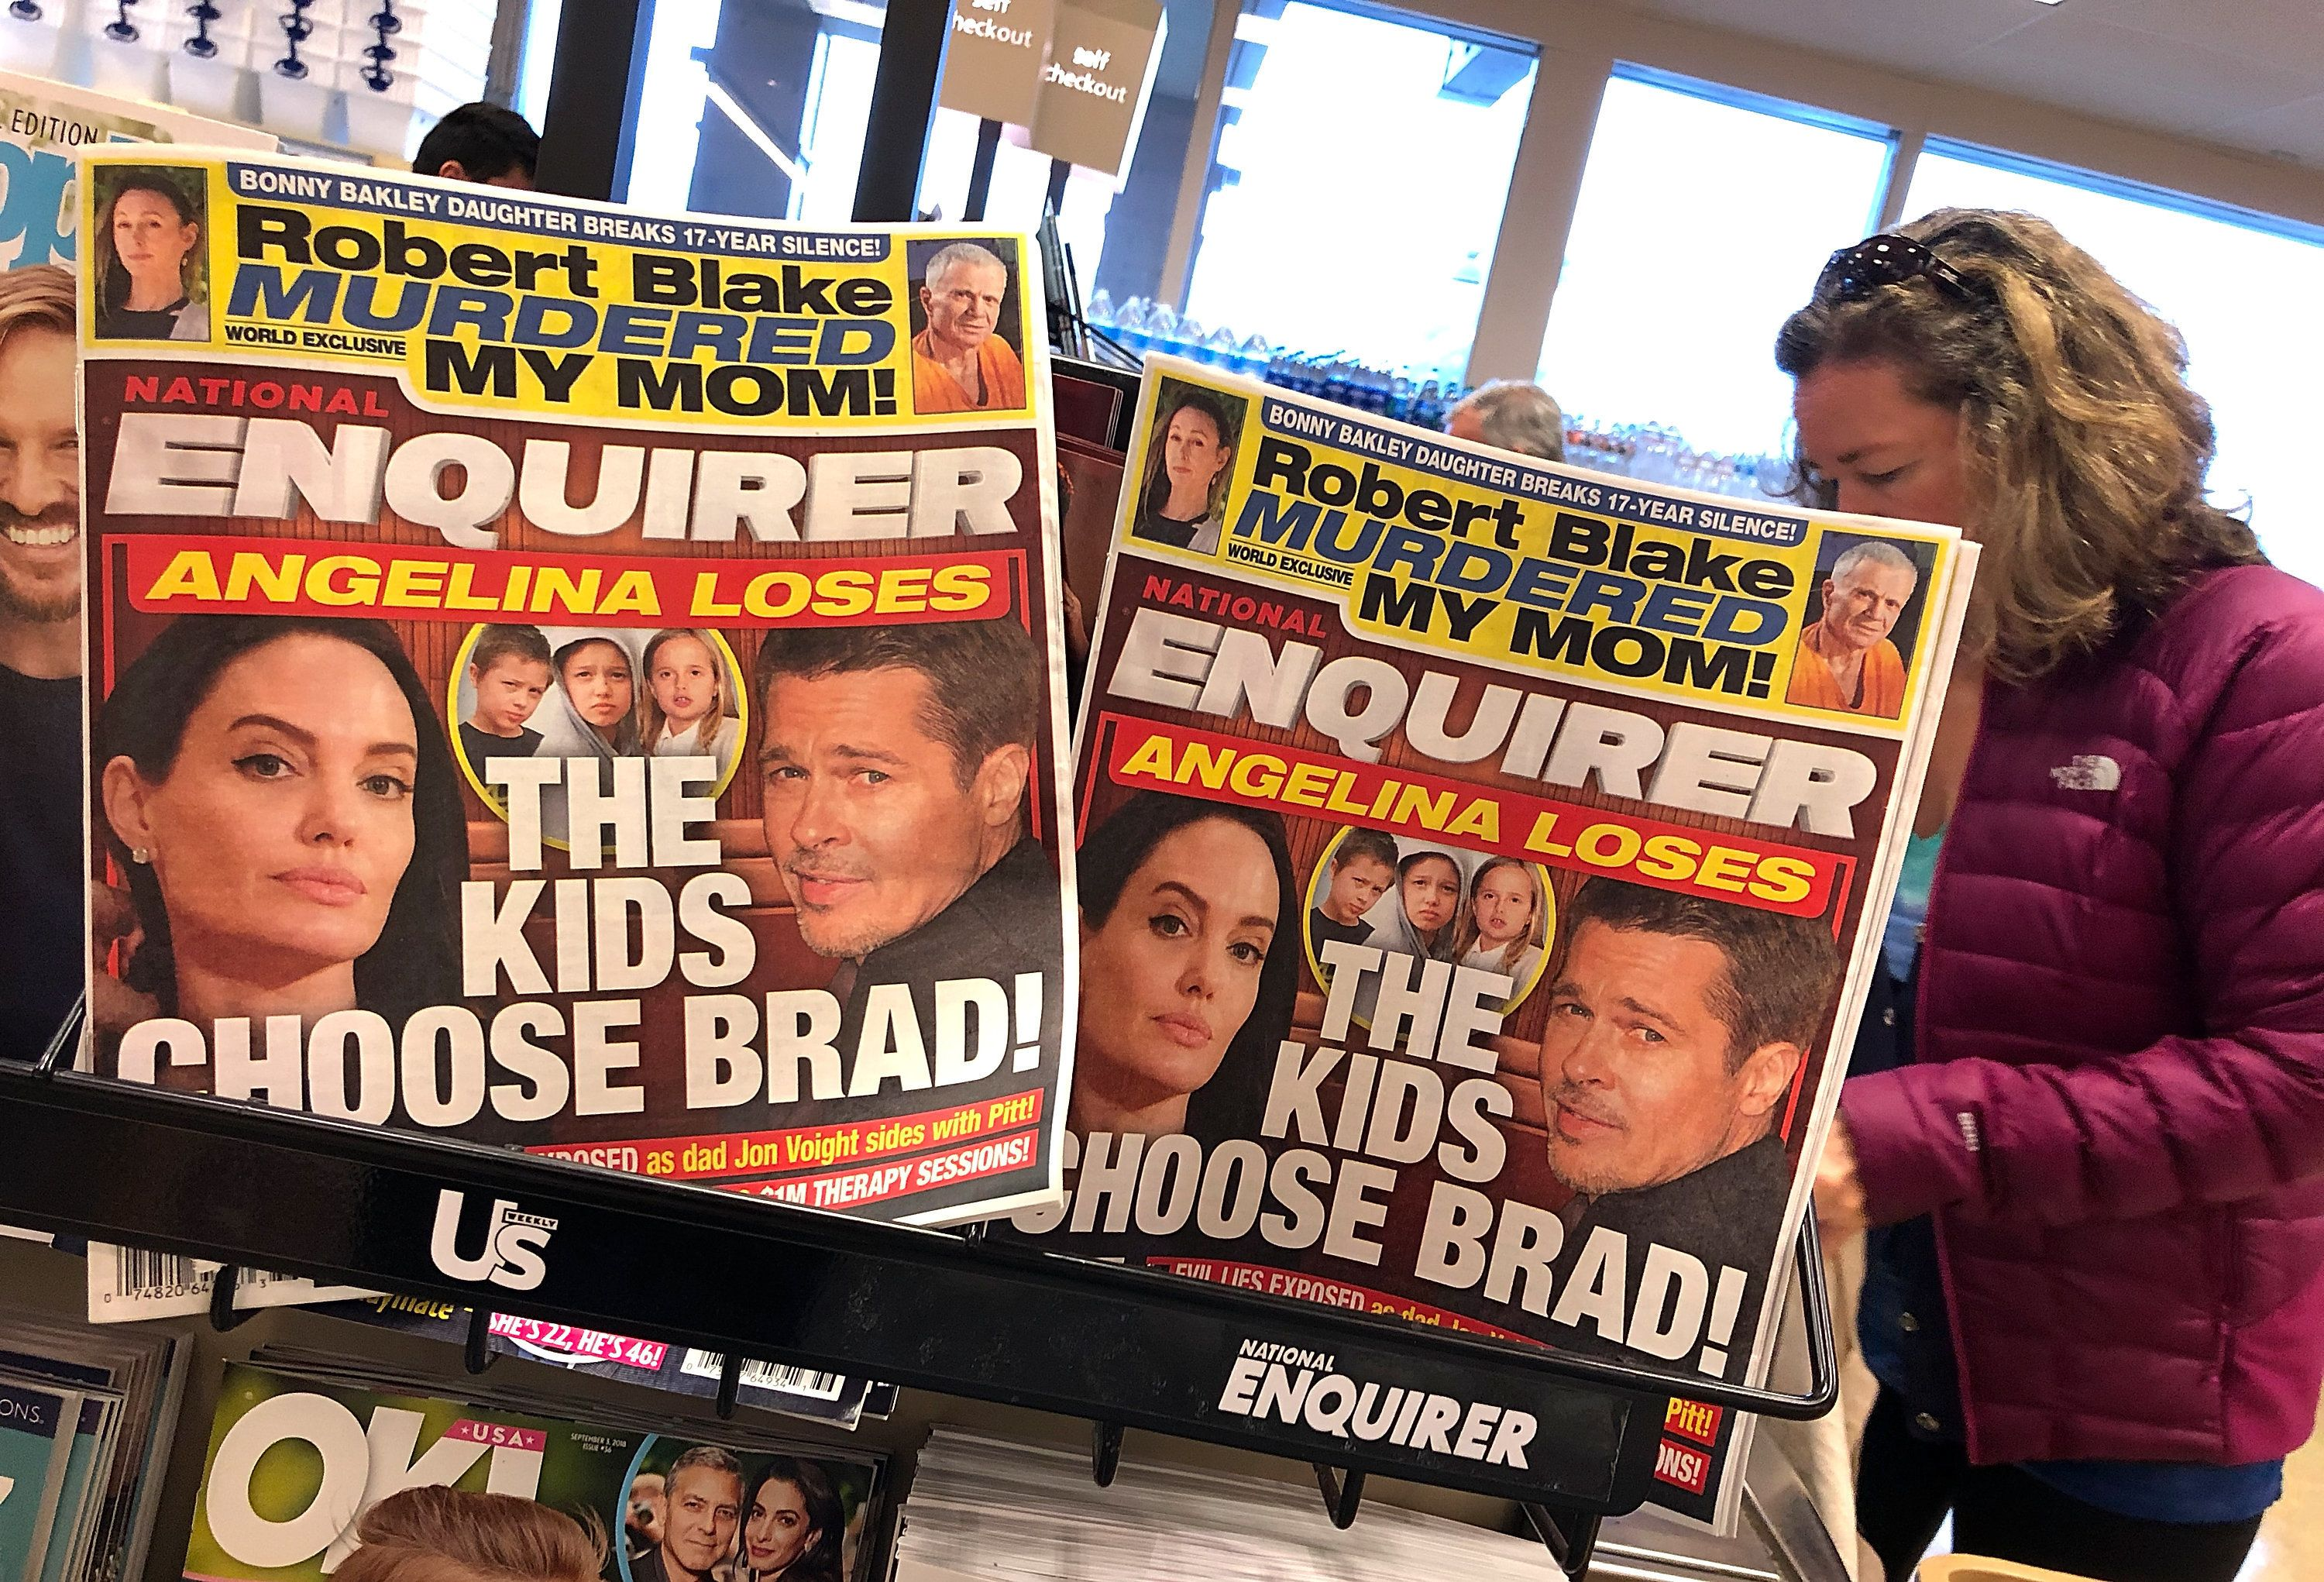 National Enquirer colluded with Trump campaign to silence mistress